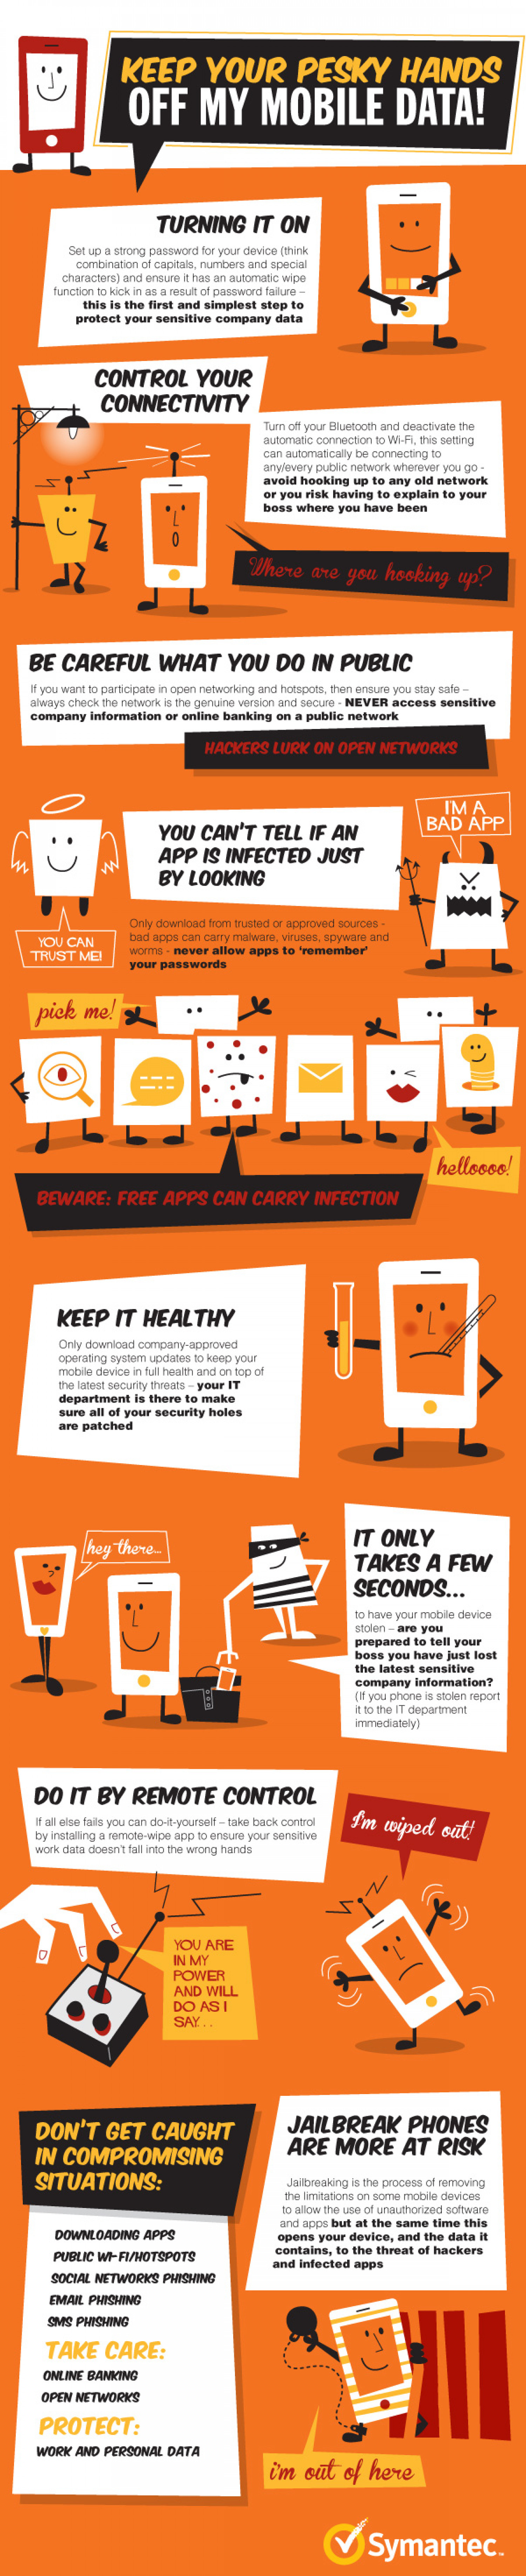 How to Keep Your Smartphone Safe & Secure Infographic Infographic